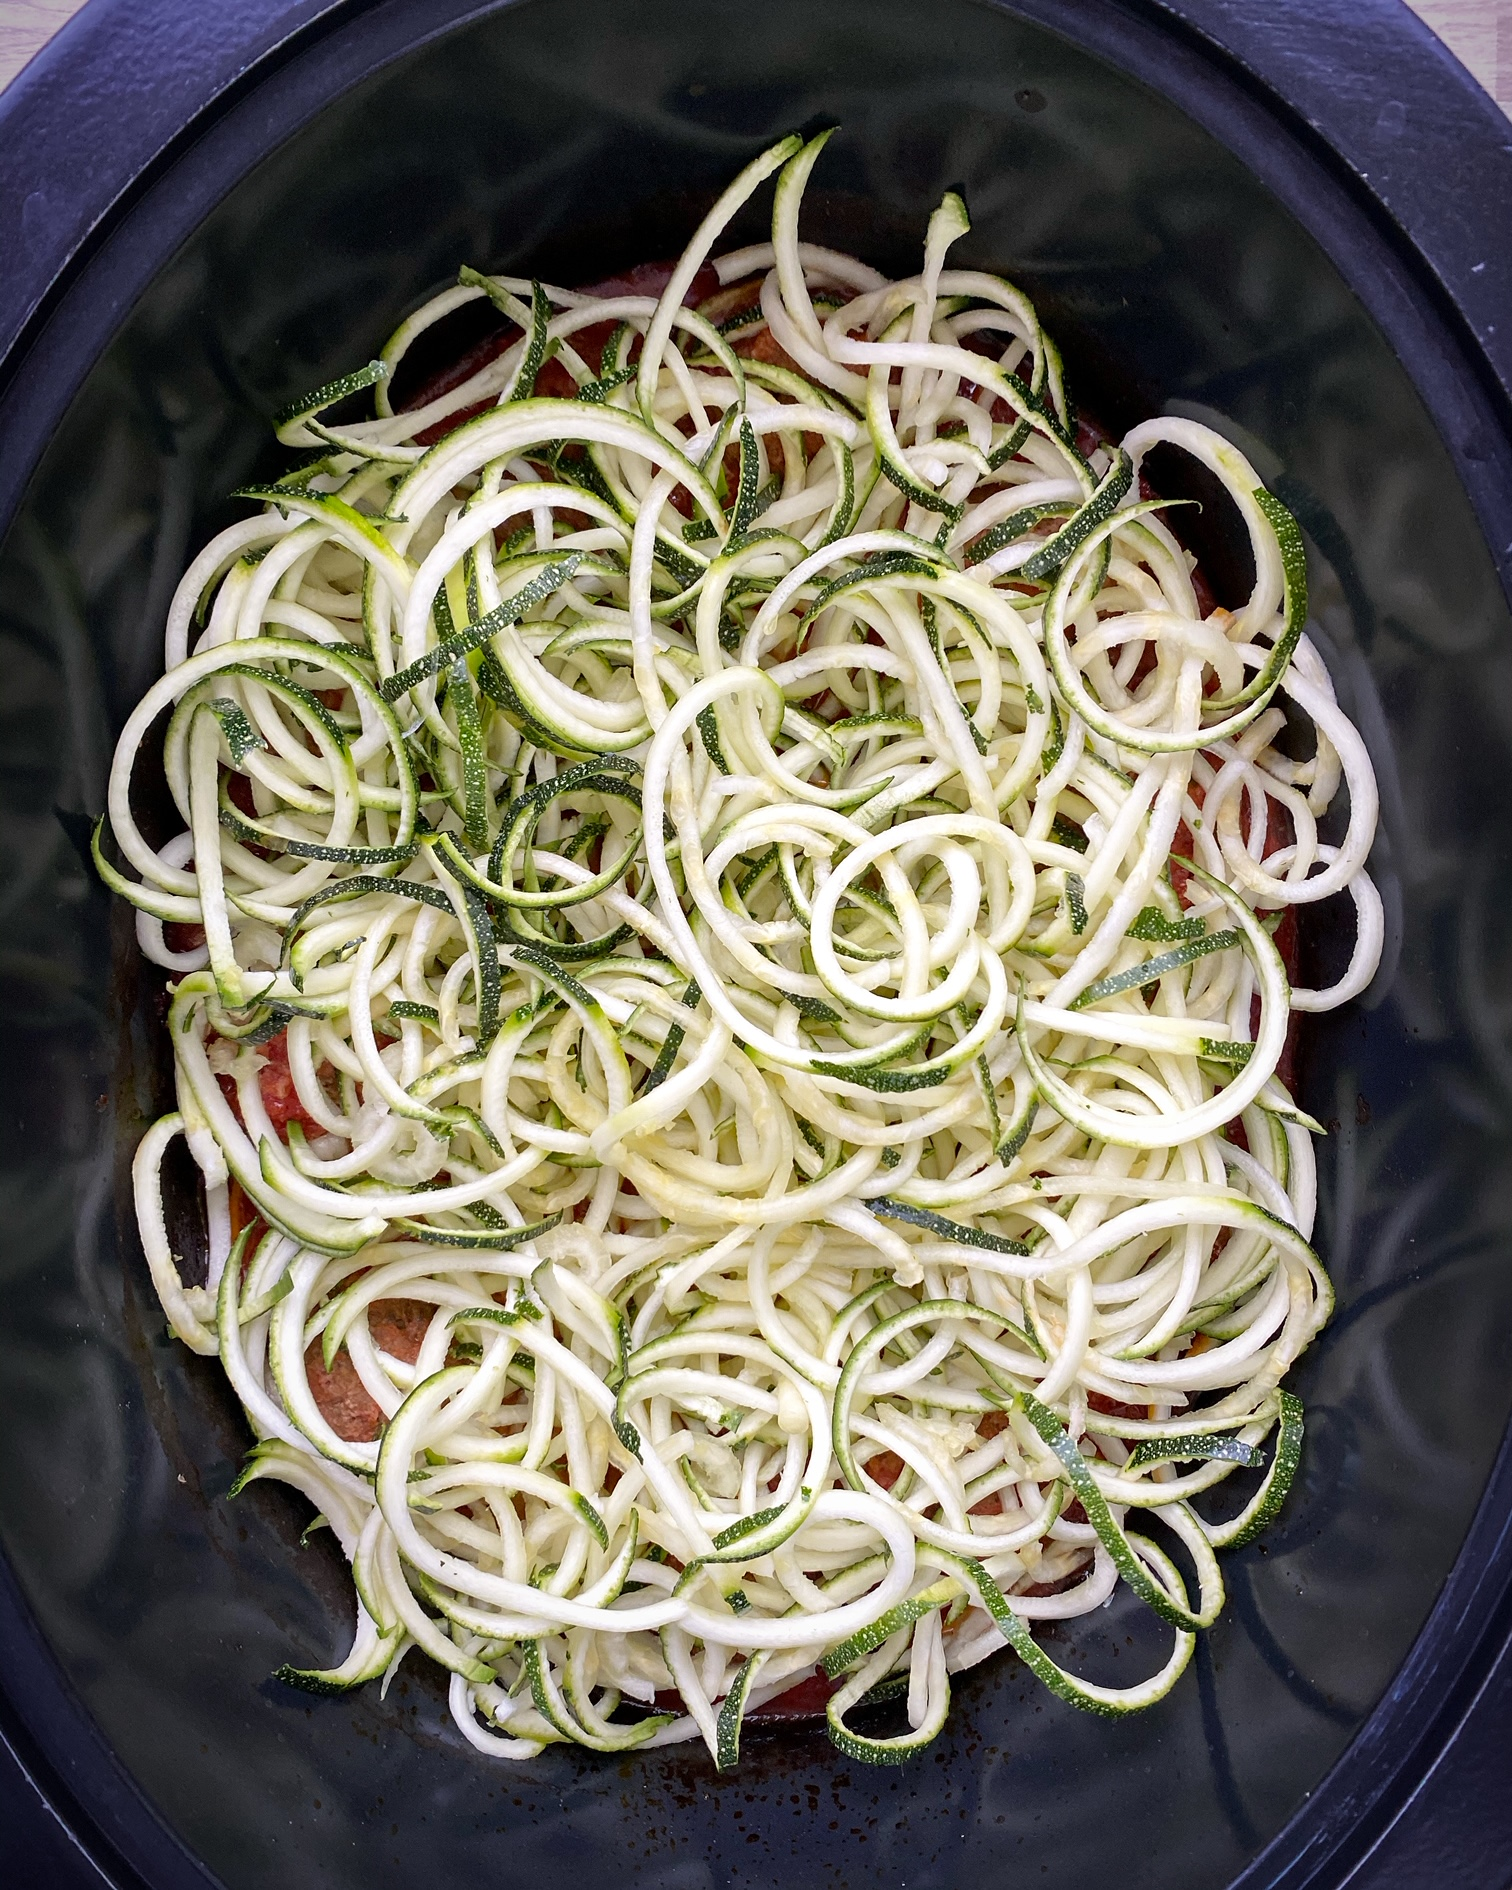 zoodles added on top of meatballs in the slow cooker